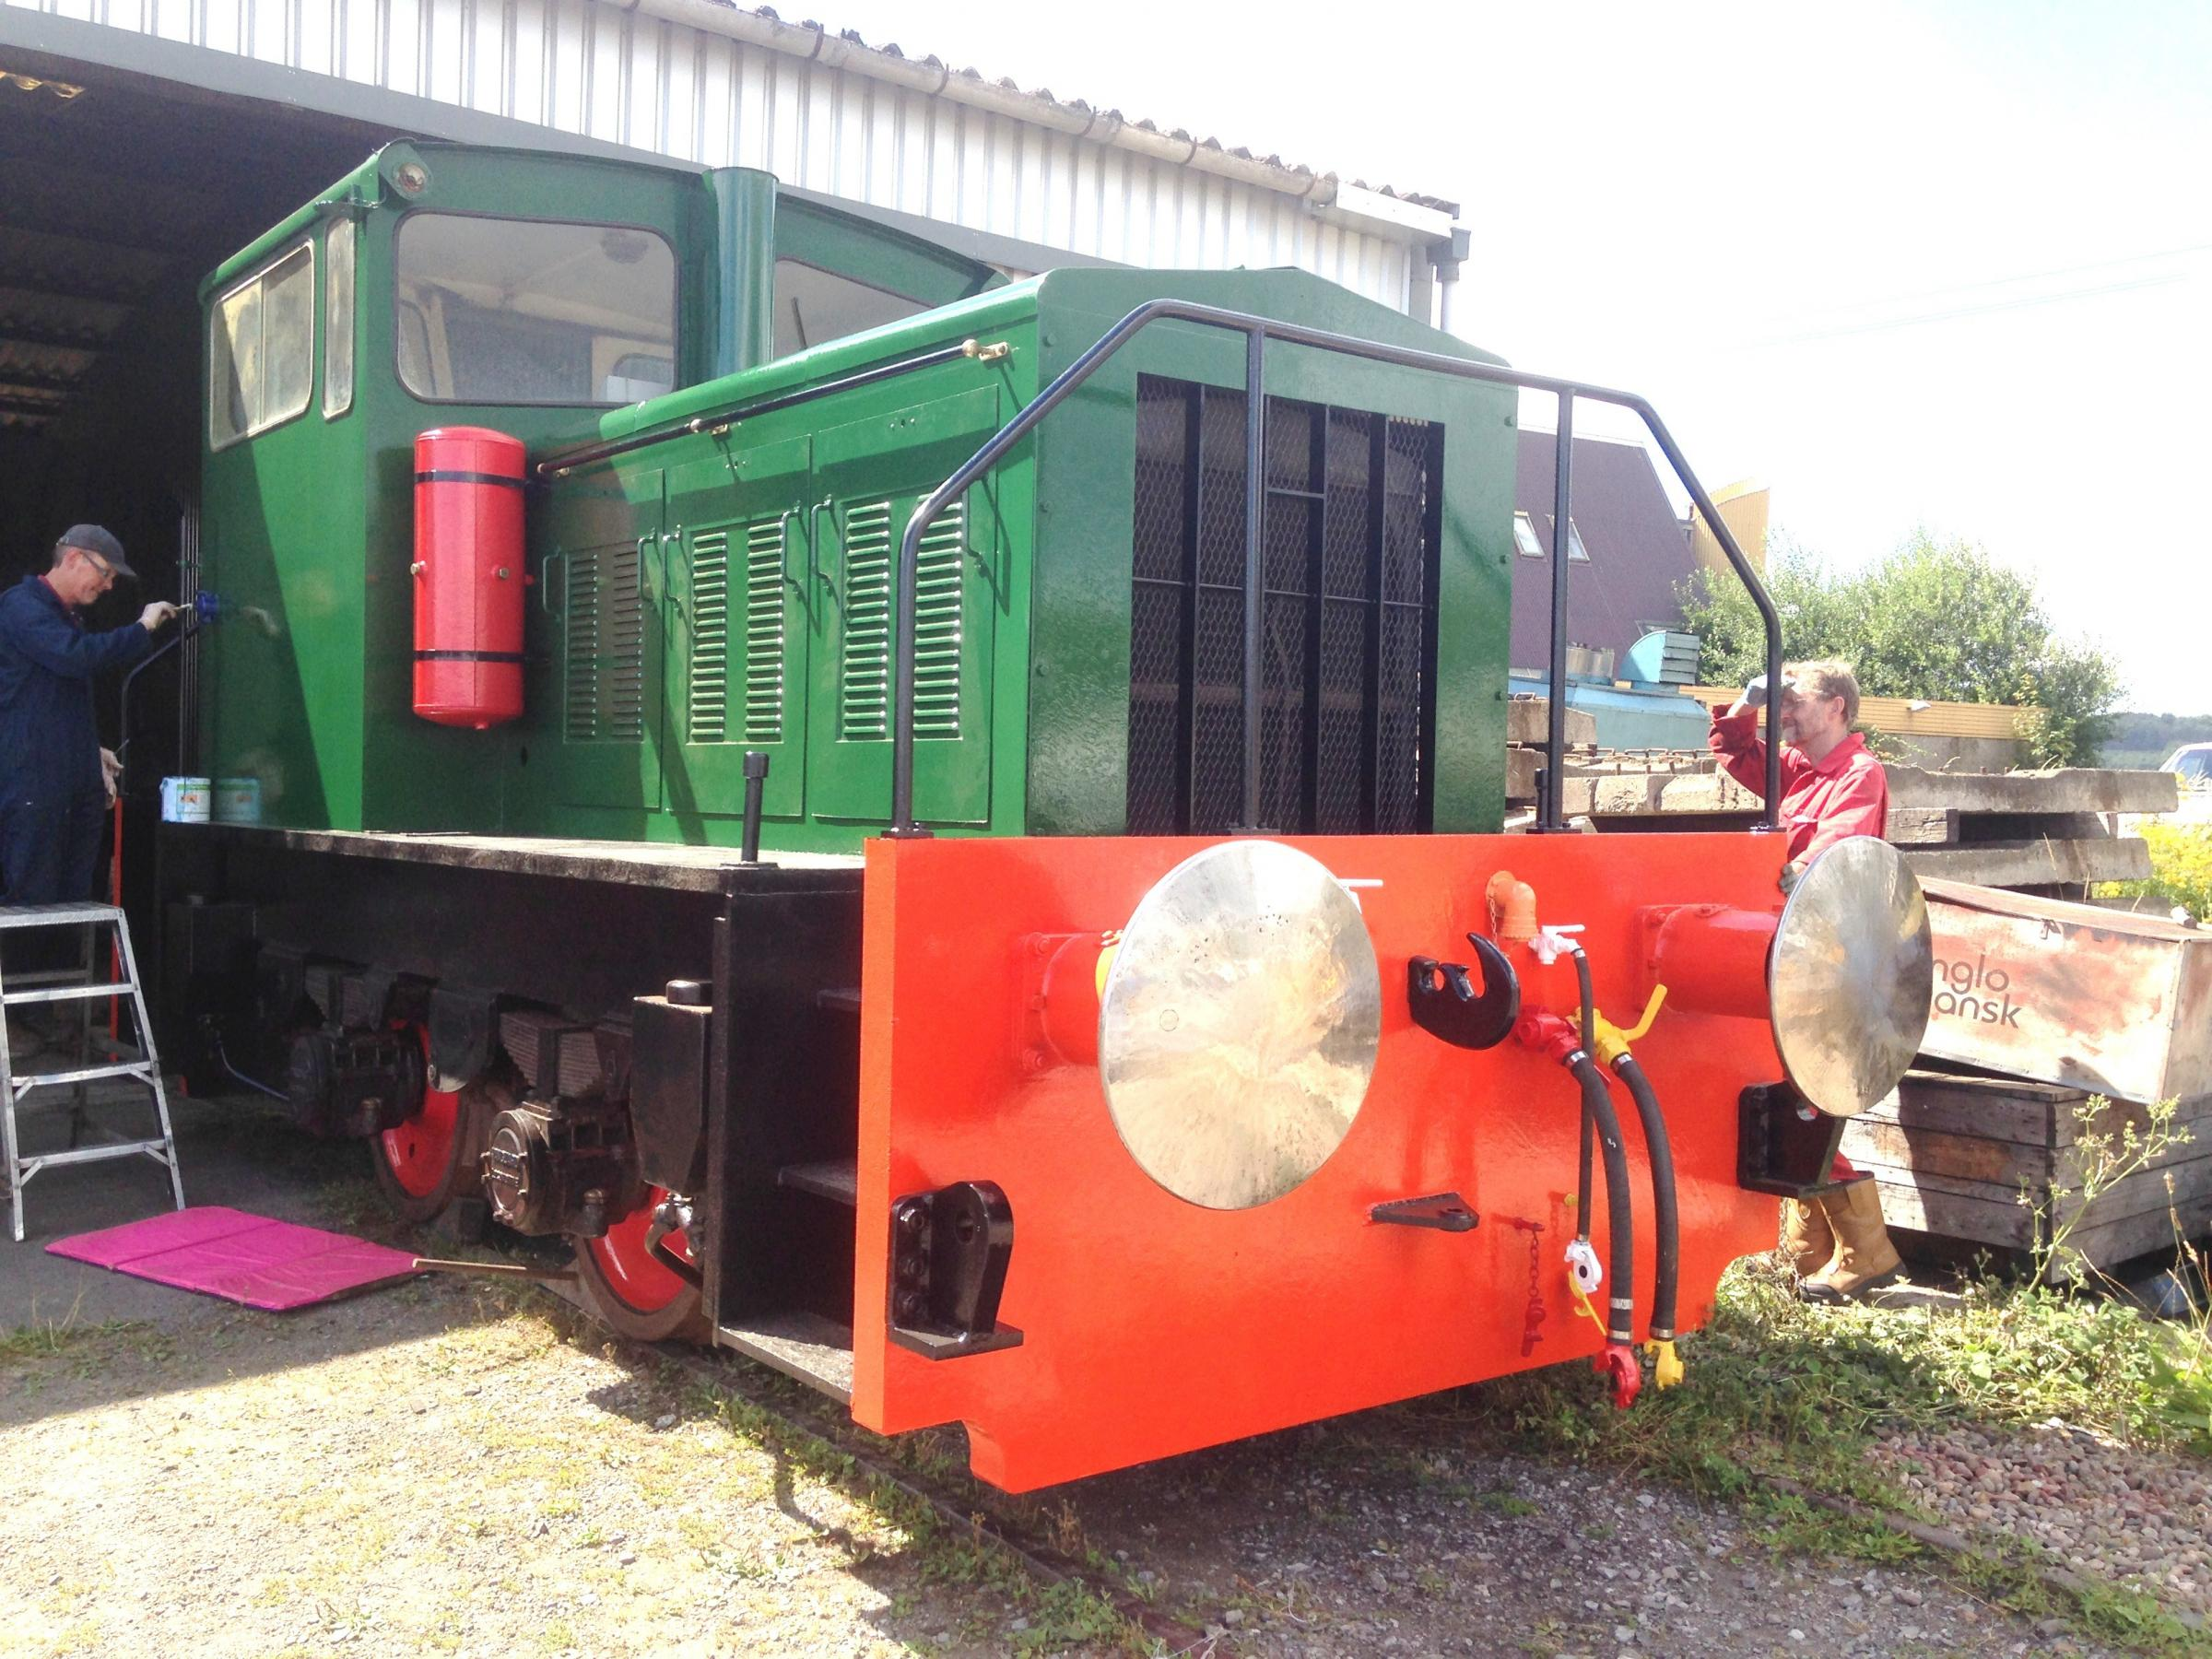 Volunteers have been working over months to bring the shunter back to its best